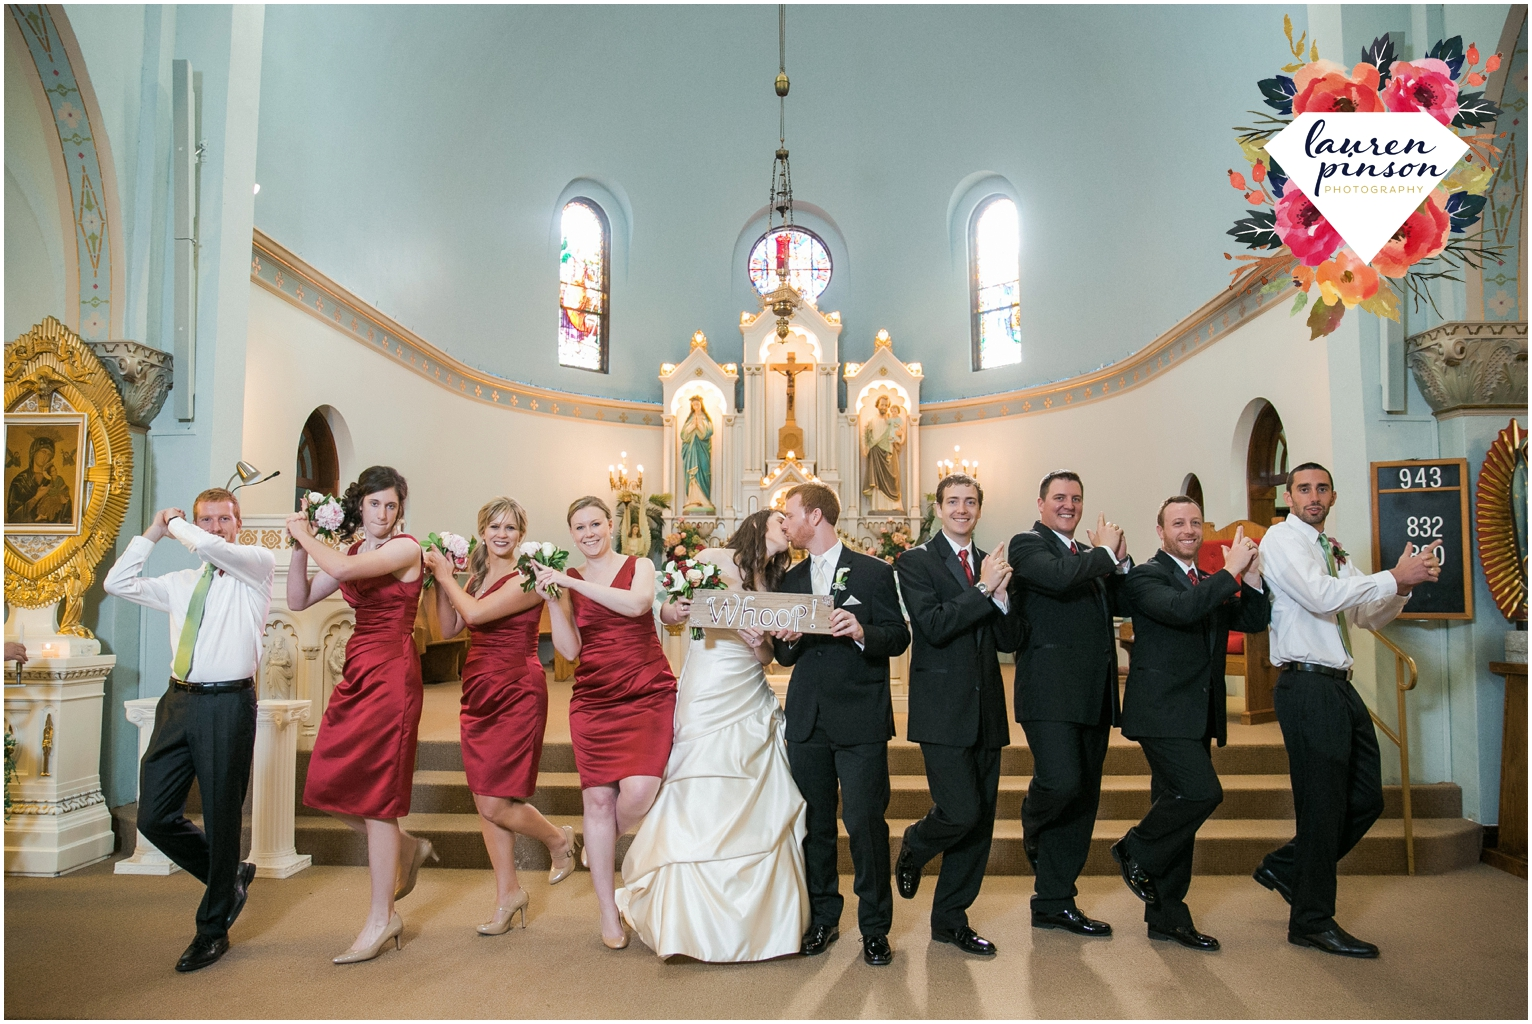 wichita-falls-wedding-photographer-OUR-Lady-queen-of-peace-catholic-wedding-the-forum-photography_0937.jpg